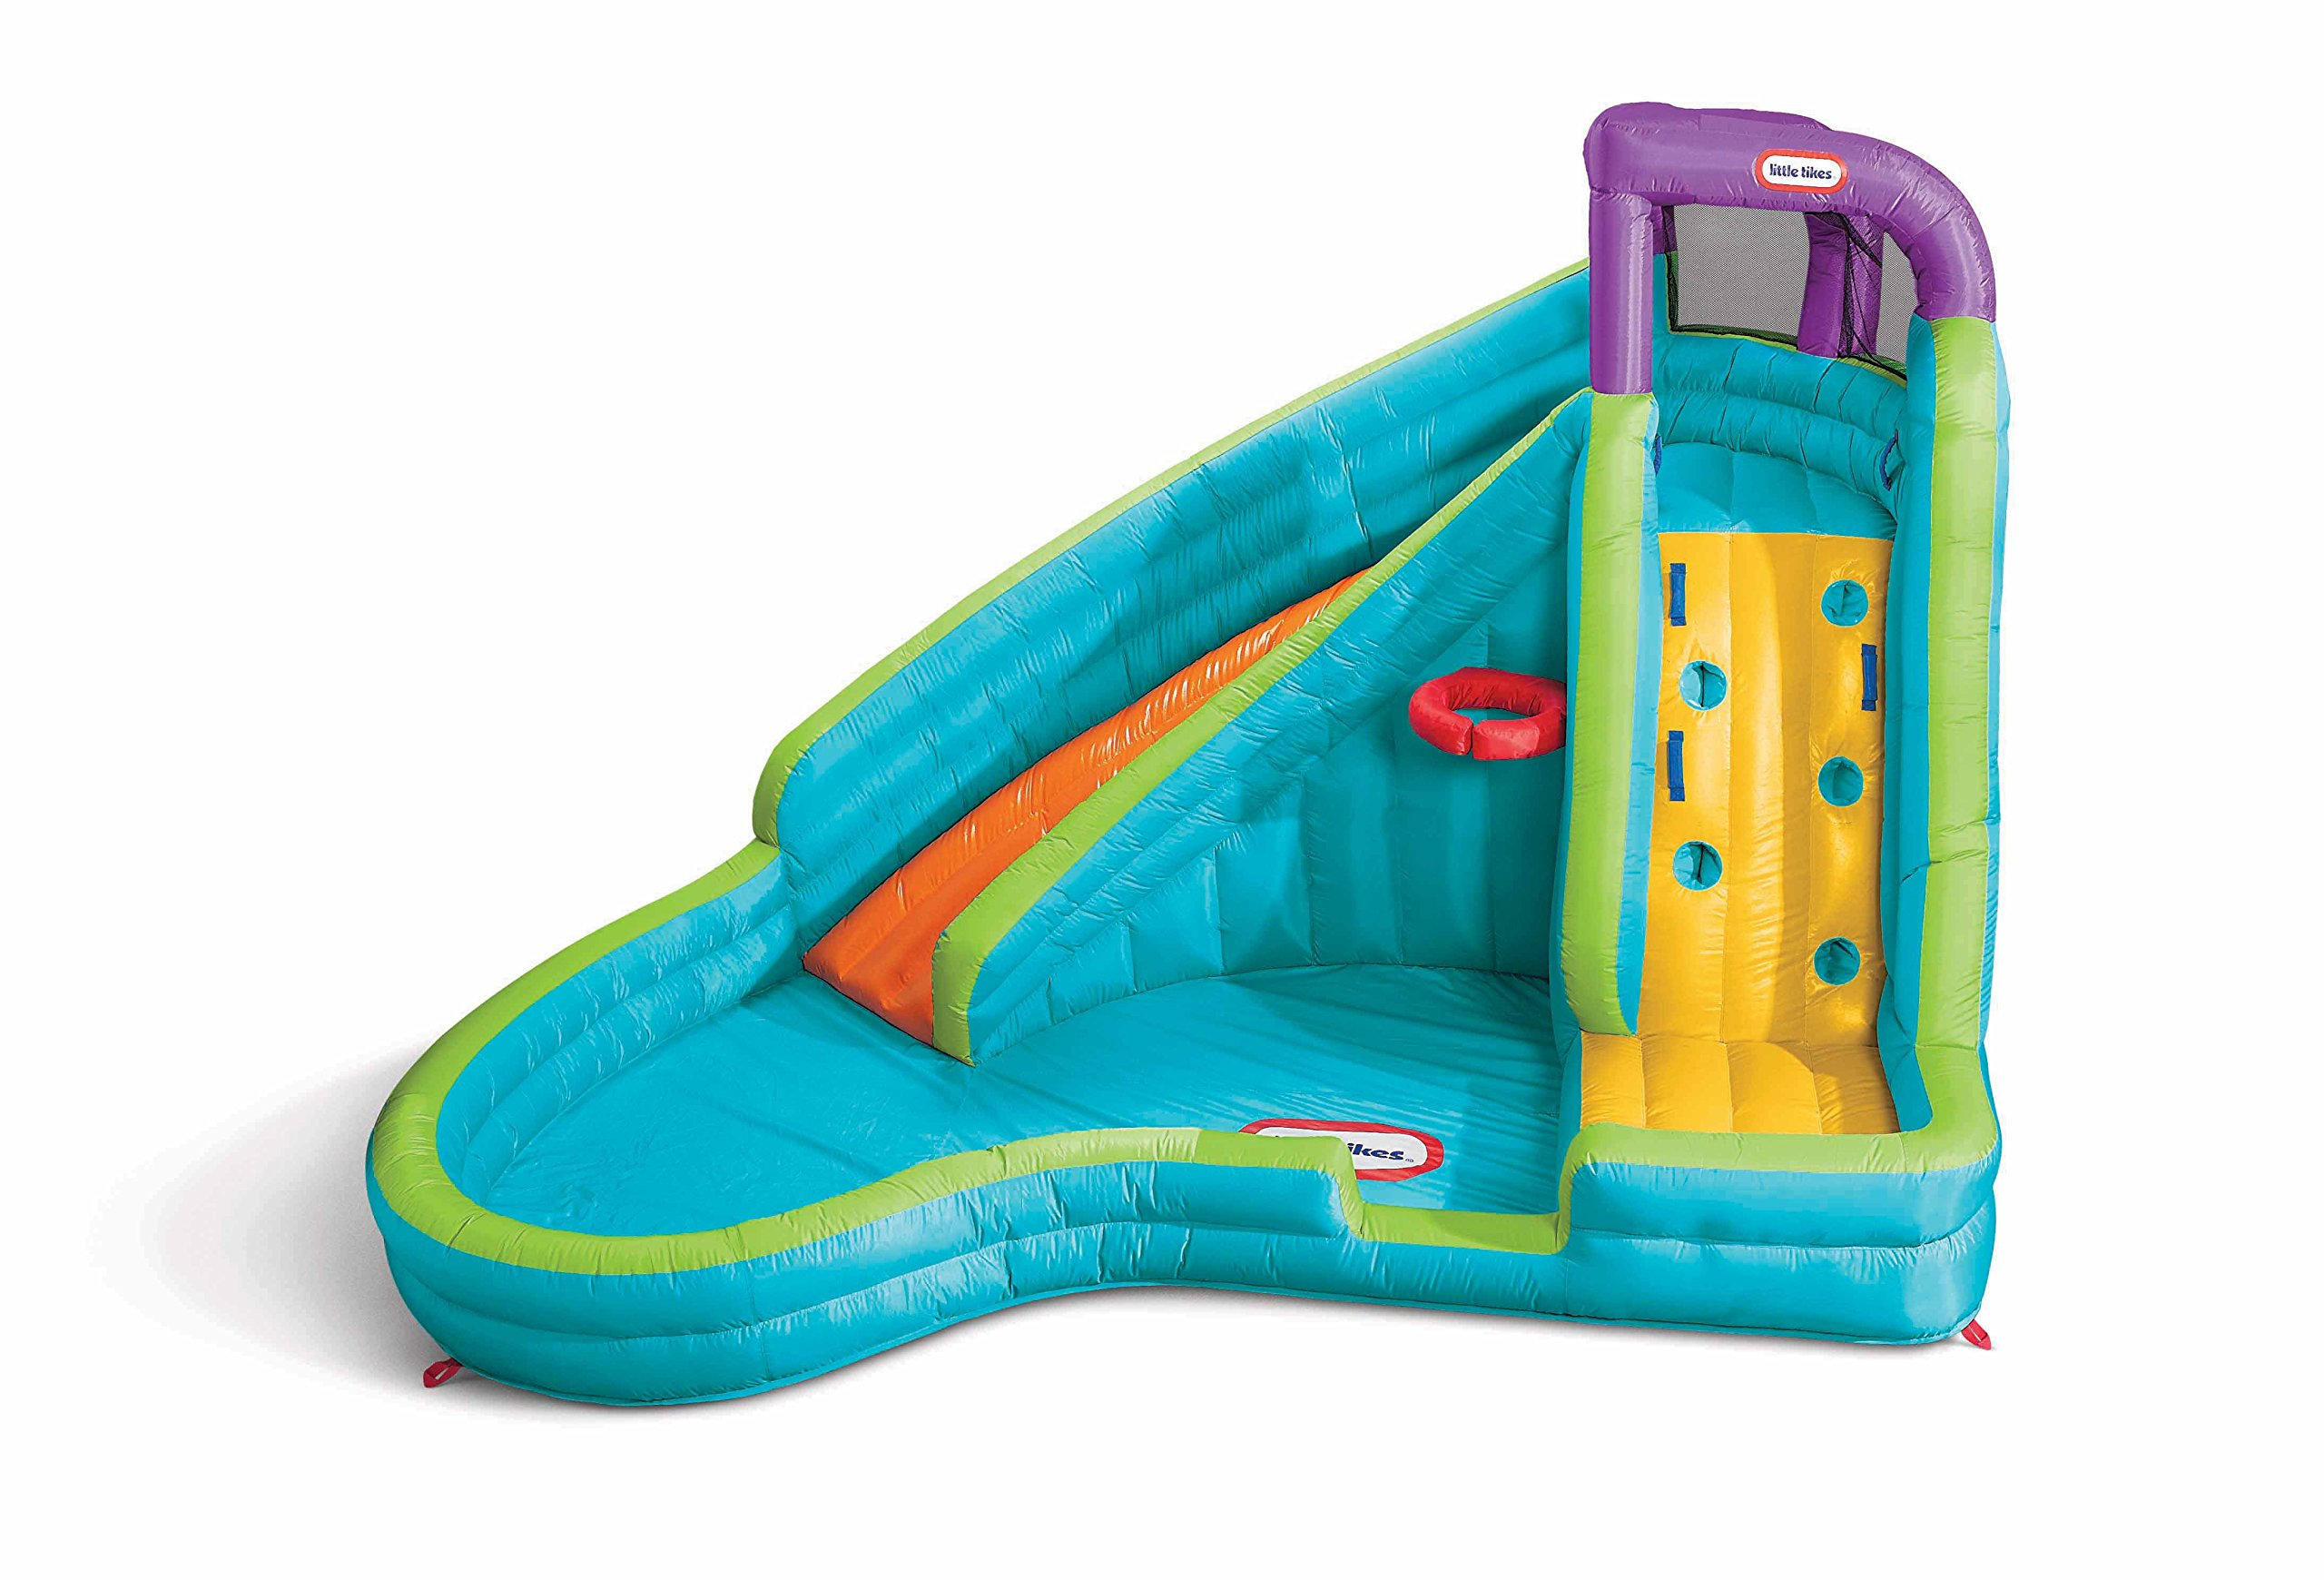 Little Tikes Slam 'n Curve Slide by Little Tikes